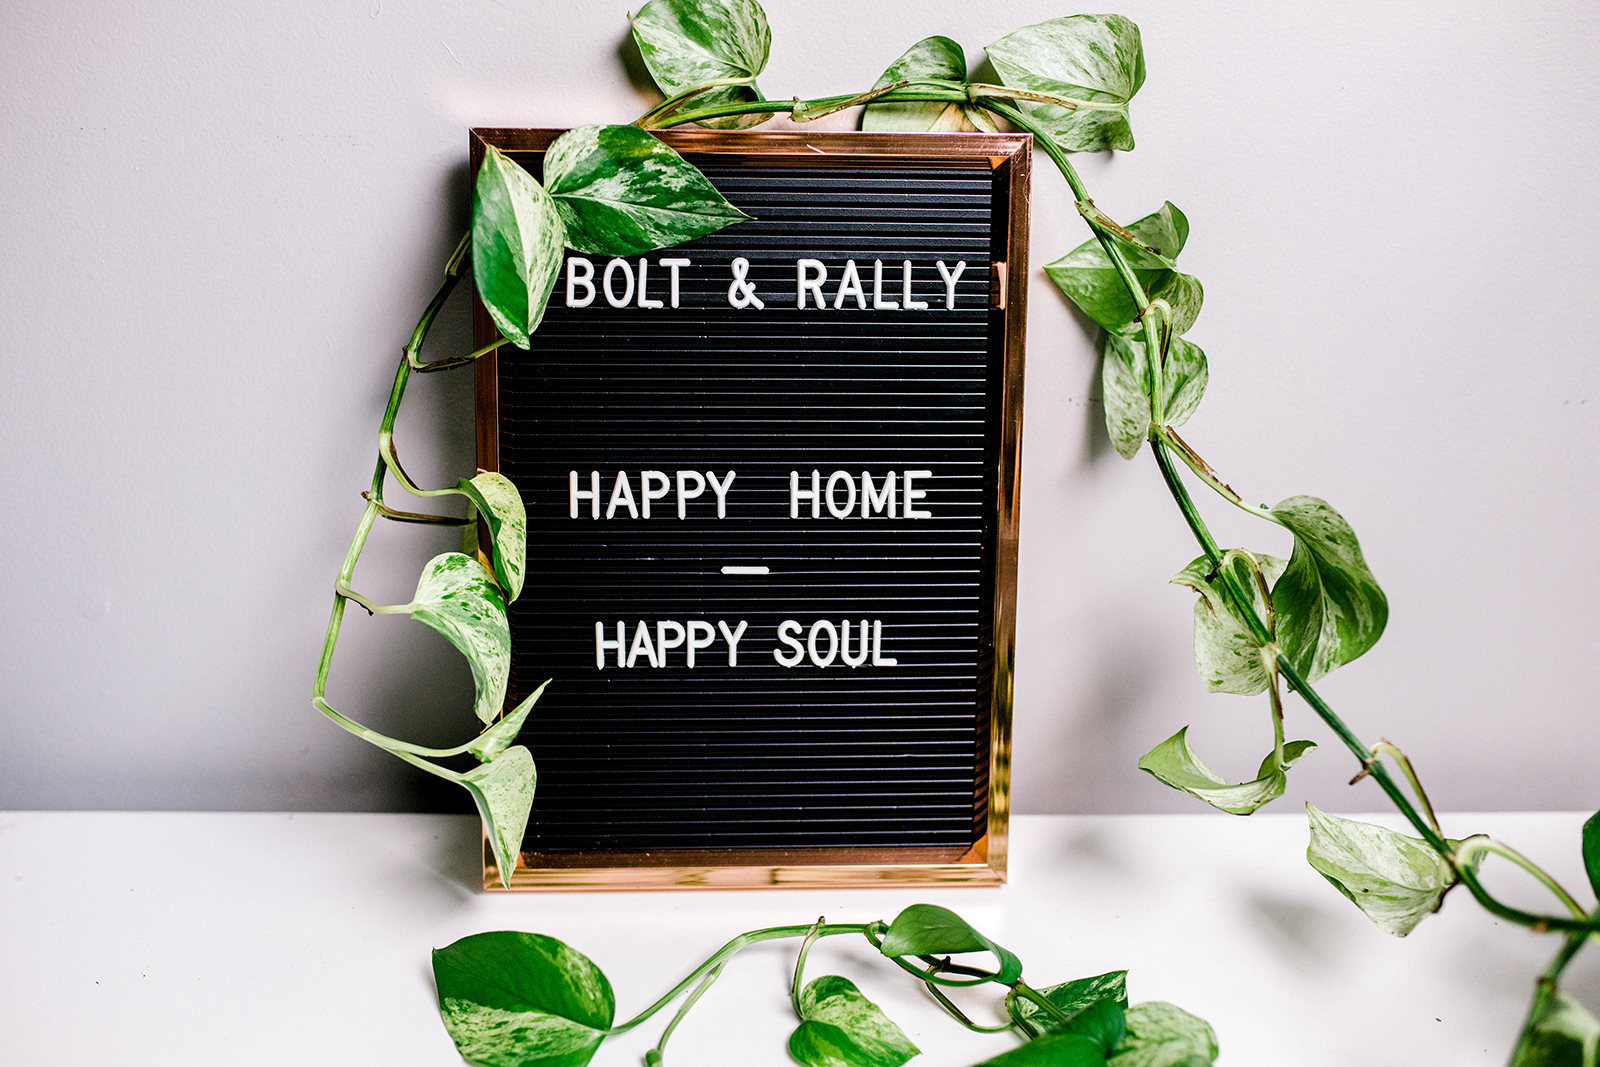 OUR ROOTS - bolt /bōlt/ verb: to move quicklyrally /ˈralē/ verb: to recover in health, spirits, or poise.We believe that since plants make people happy, planters can make people happy, too. Long gone are the days where planters are merely just a decoration; our pots have been created to boost your mood with a cute, sweet or inspiring quote.Every one of our terracotta planters are hand painted and hand stamped from our home workshop in Toronto, Canada.Today, over 2,000 of our planters live in happy homes.Thank you for helping us grow!